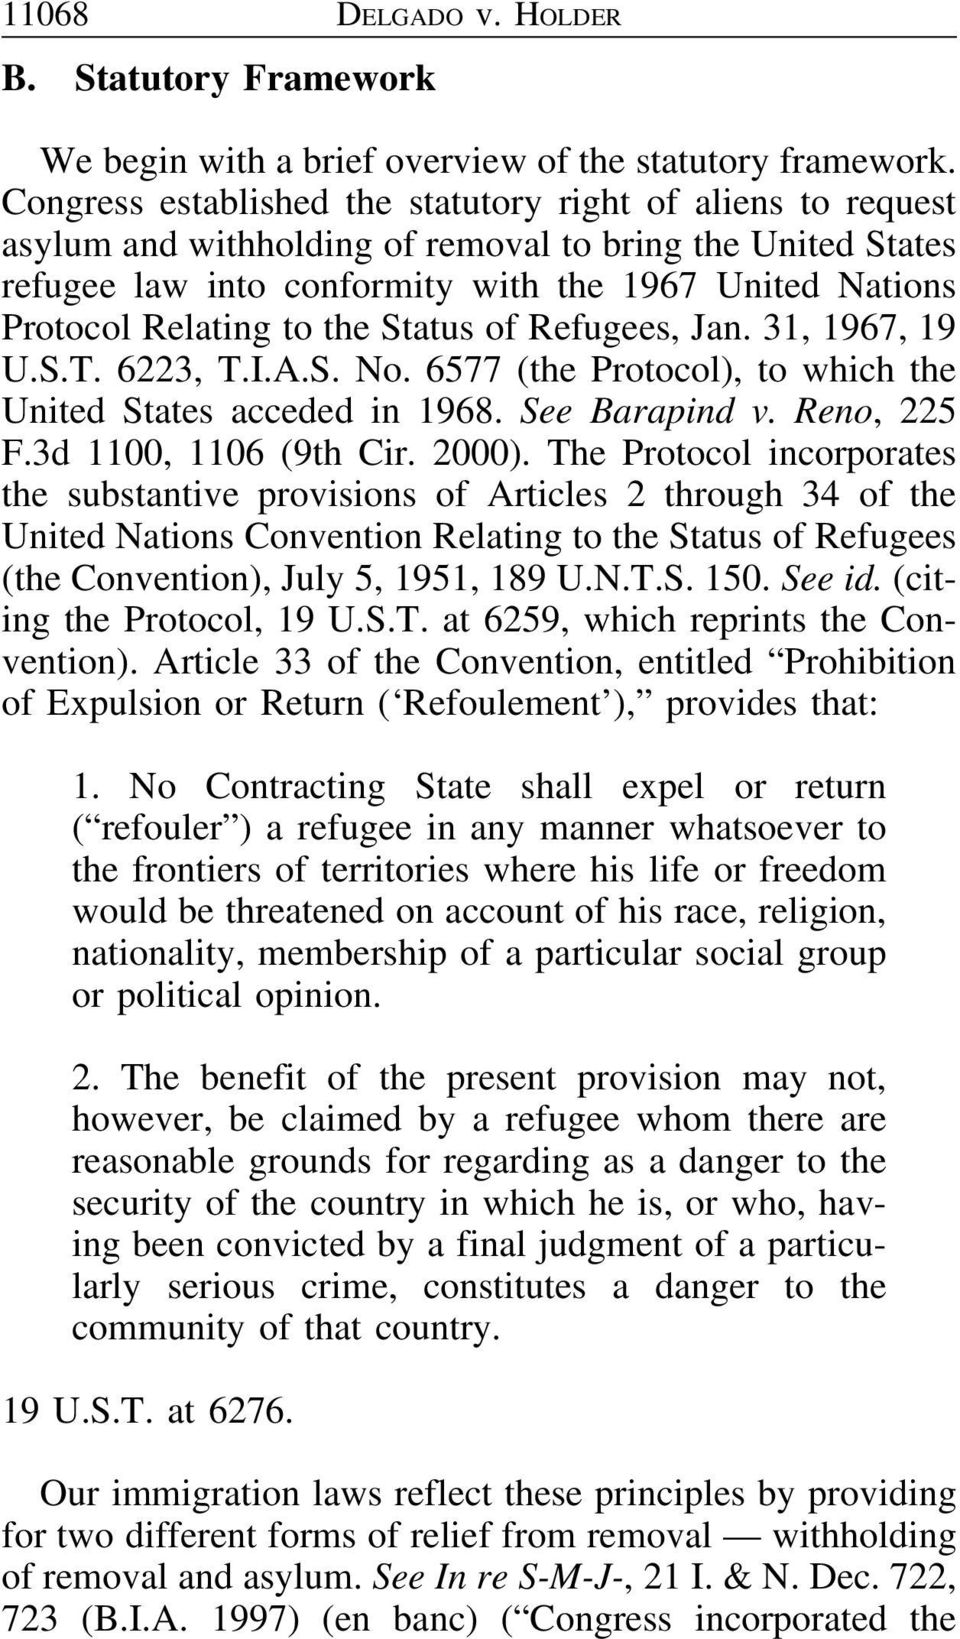 to the Status of Refugees, Jan. 31, 1967, 19 U.S.T. 6223, T.I.A.S. No. 6577 (the Protocol), to which the United States acceded in 1968. See Barapind v. Reno, 225 F.3d 1100, 1106 (9th Cir. 2000).